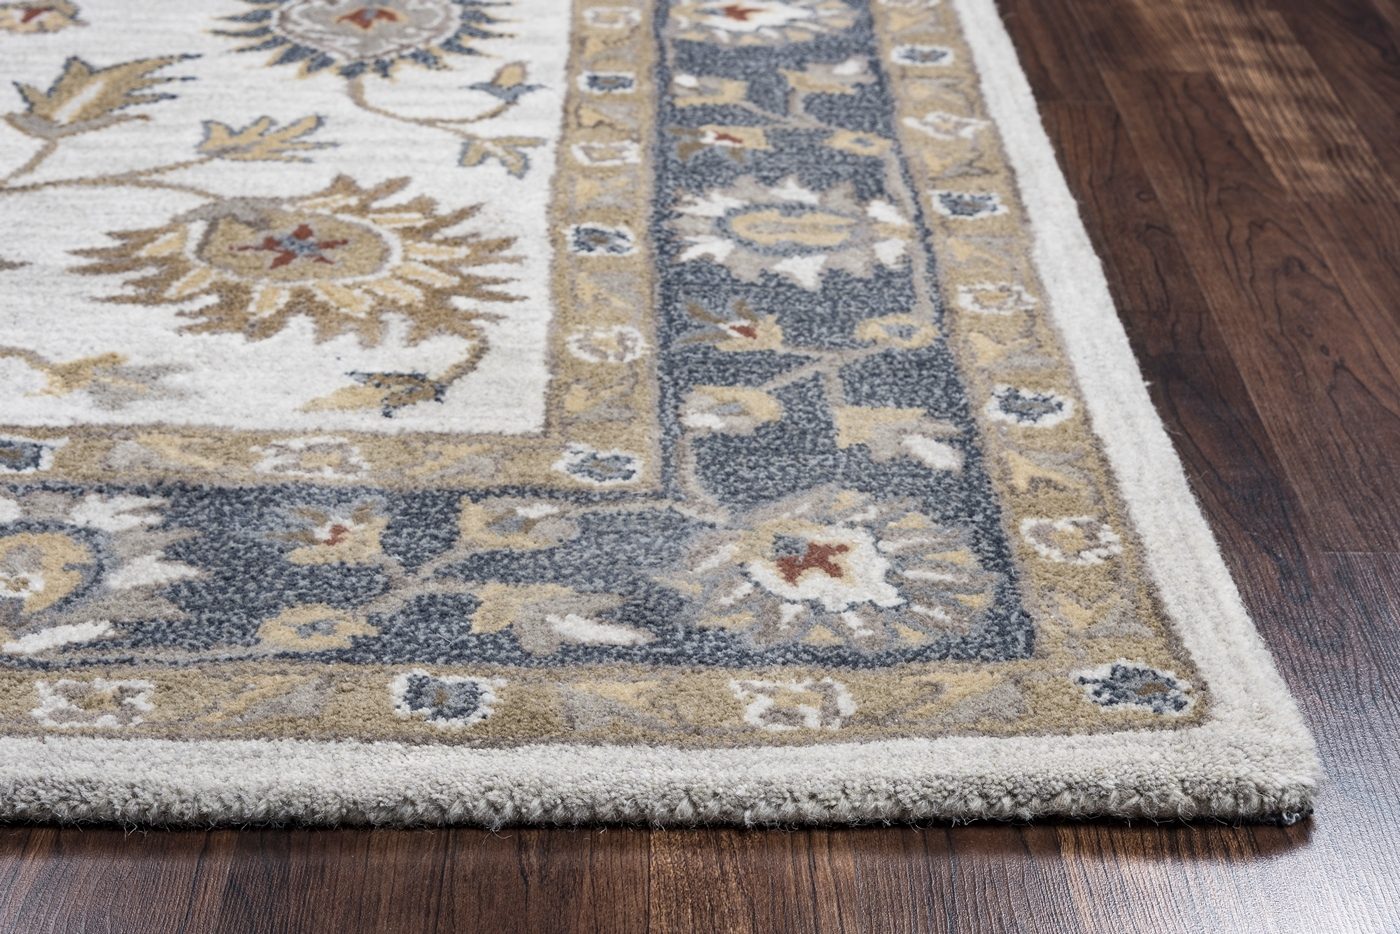 Valintino Floral Vine Border Wool Runner Rug In Taupe Blue